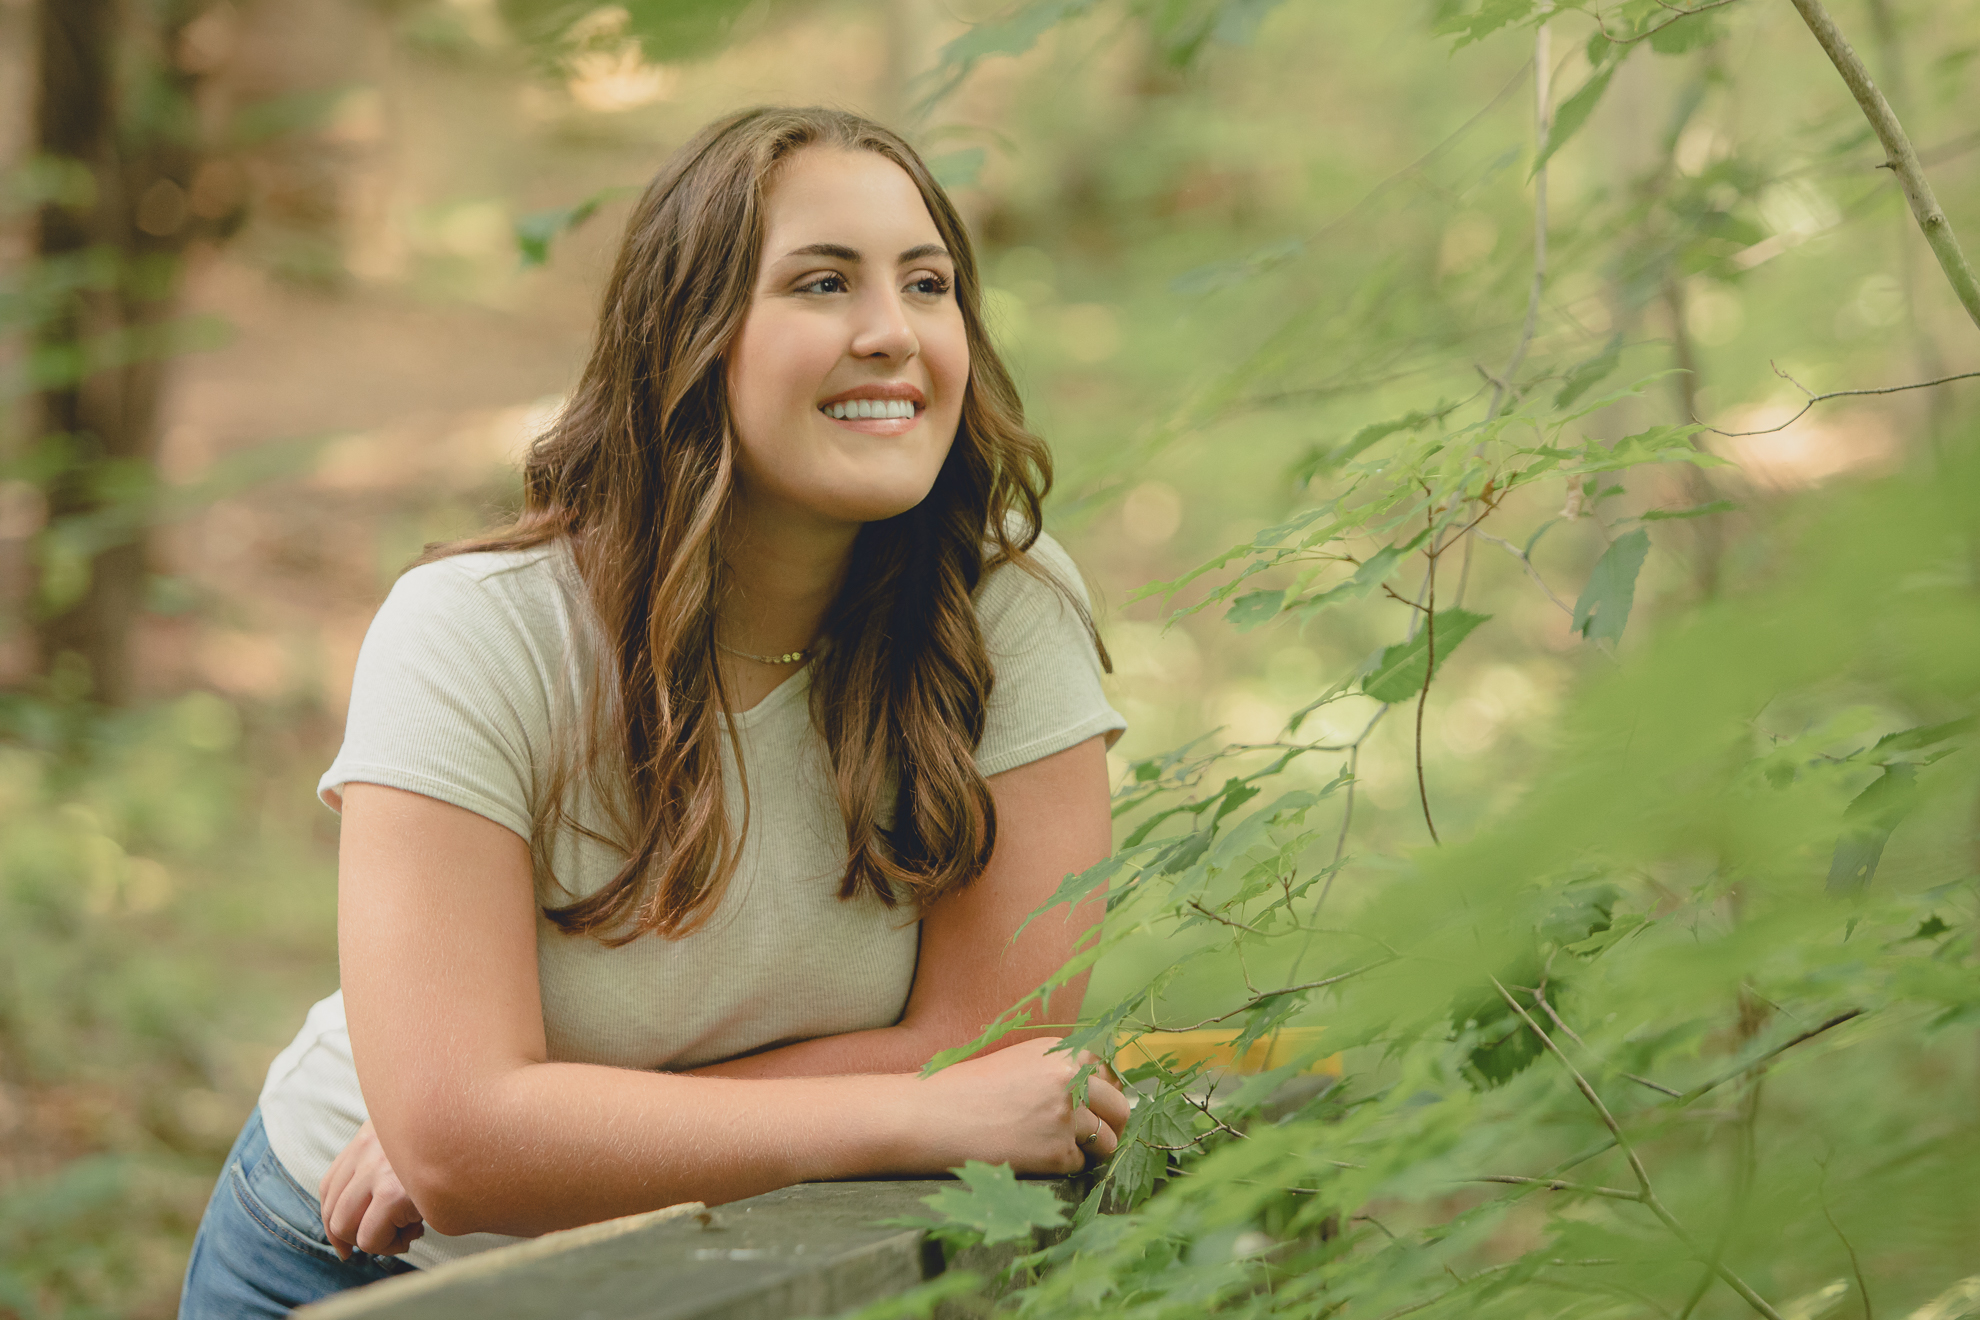 tessa smiles while leaning on bridge during senior portrait photography session in Long Point State Park in WNY